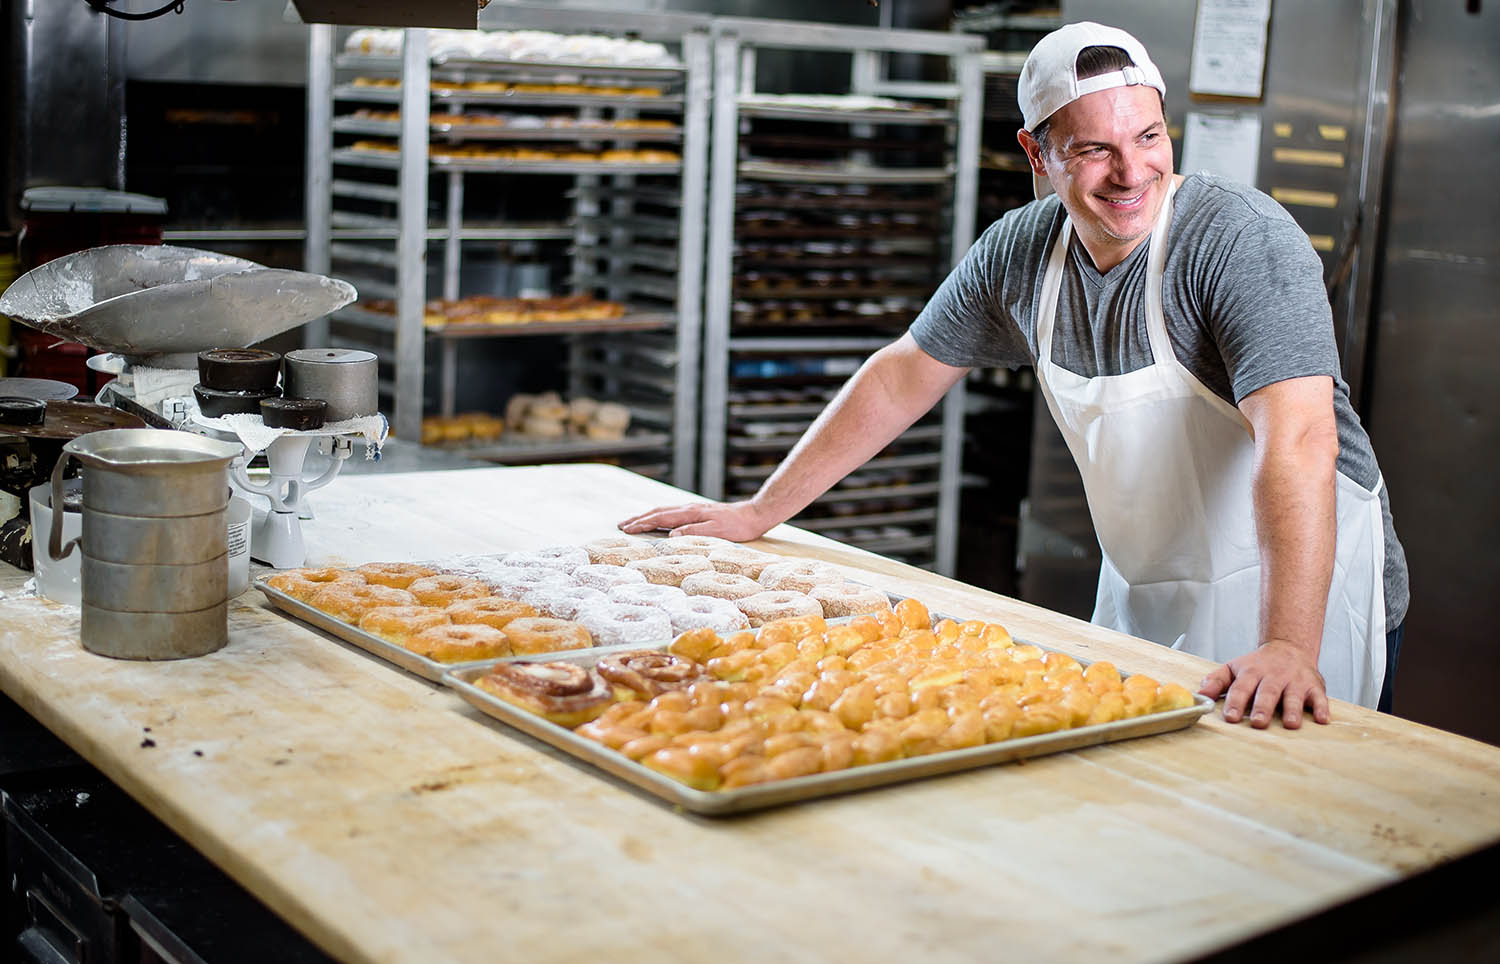 A pastry chef poses in his kitchen in this commercial image by Joe Dantone